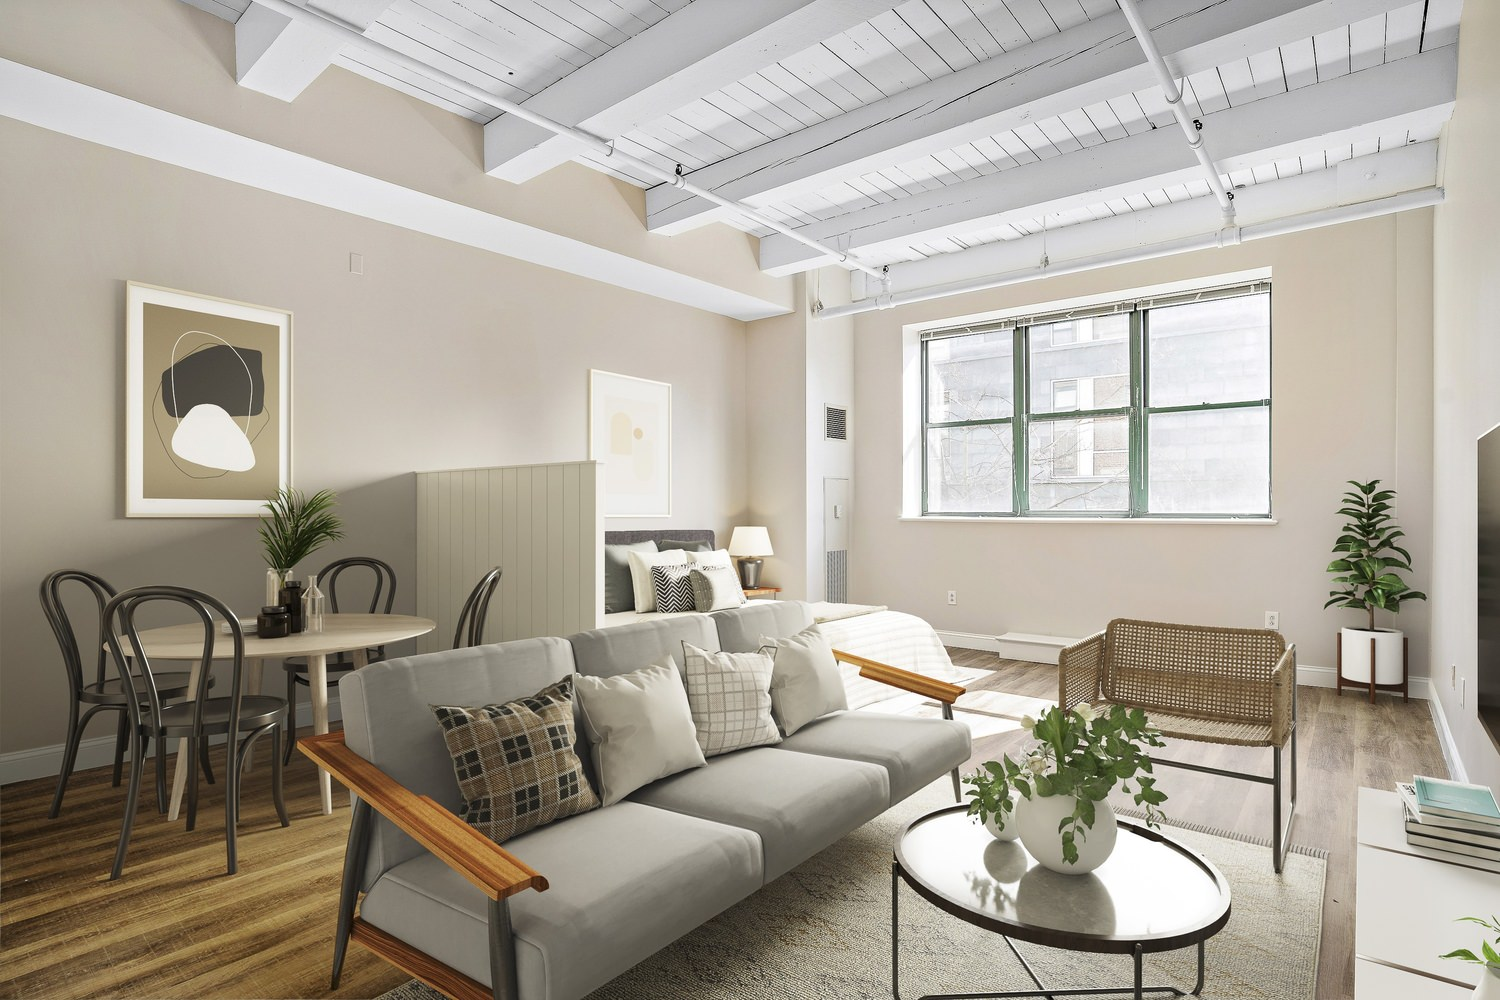 Indoor decorated living room with a couch and a table and furnitures , white ceiling